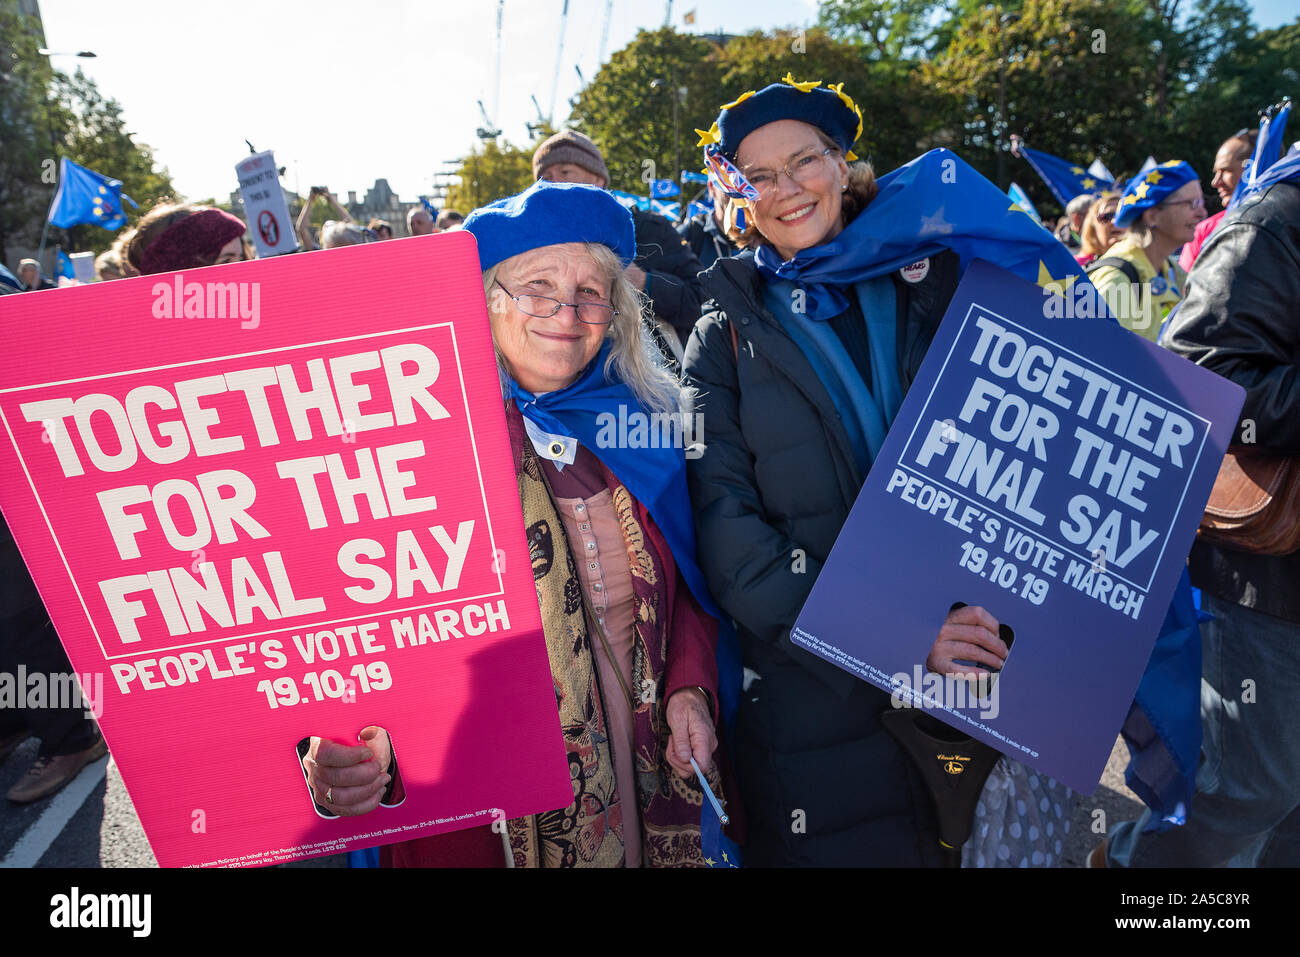 London, UK, 19 Oct 2019. Peoples Vote March. While Parliament debated the deal negotiated by PM Boris Johnson with the EU hundreds of thousands of anti Brexit protestors marched from Park Lane to Parliament Square. Pictured, two women marchers holding Together for the Final Say Peoples Vote placards. Credit: Stephen Bell/Alamy Stock Photo